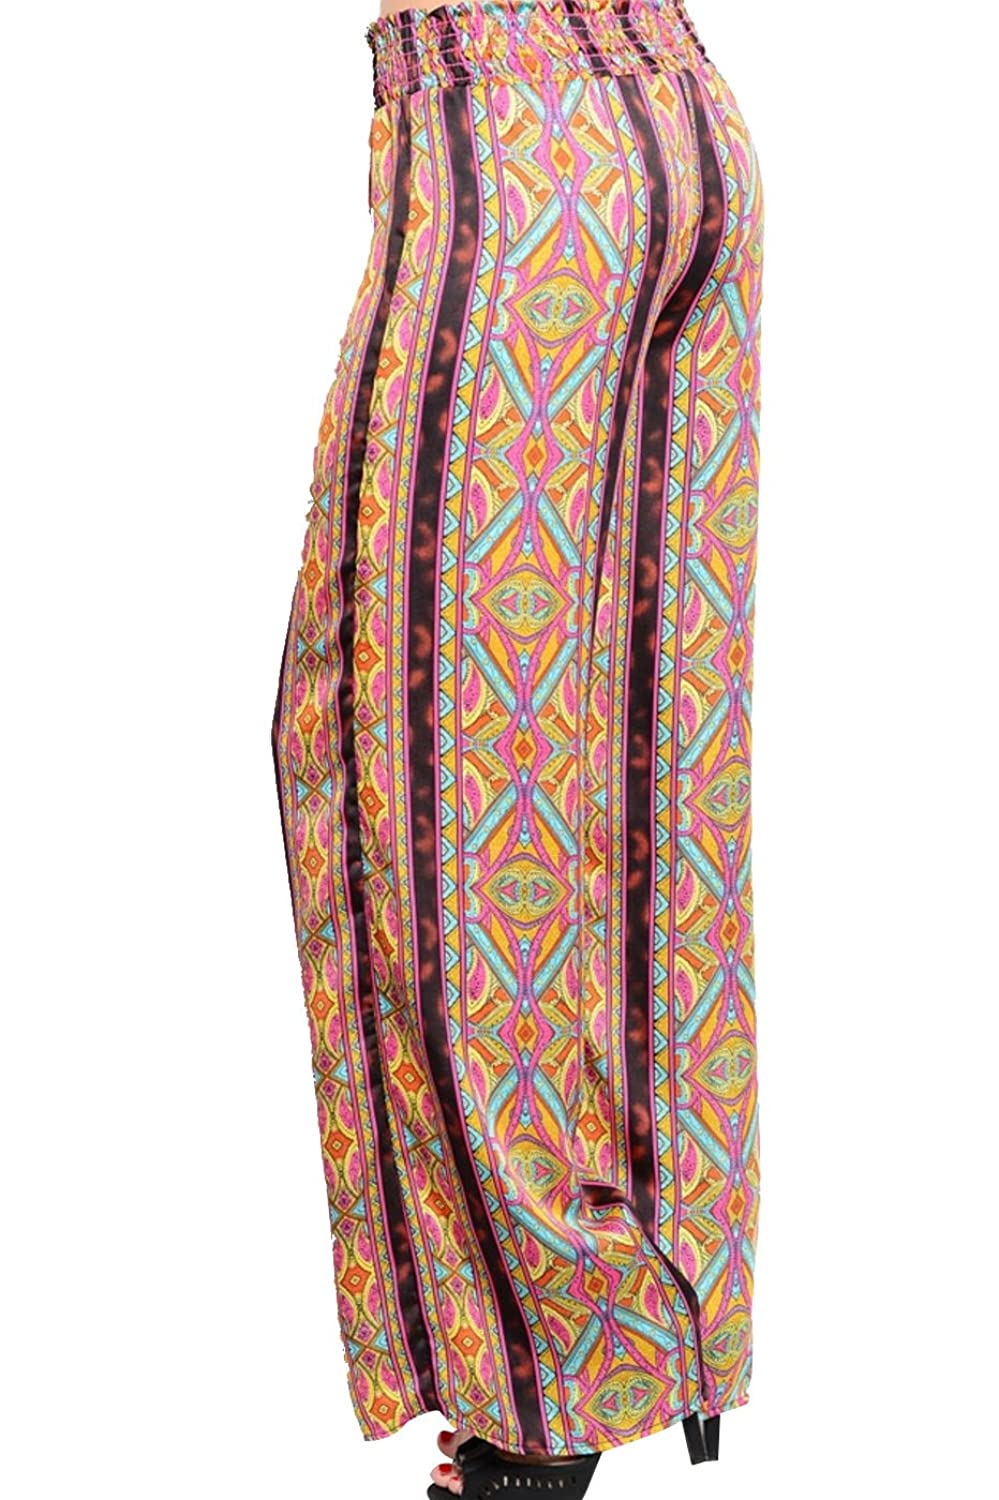 2LUV Women's Aztec/Geometric Mix Print Palazzo Pants